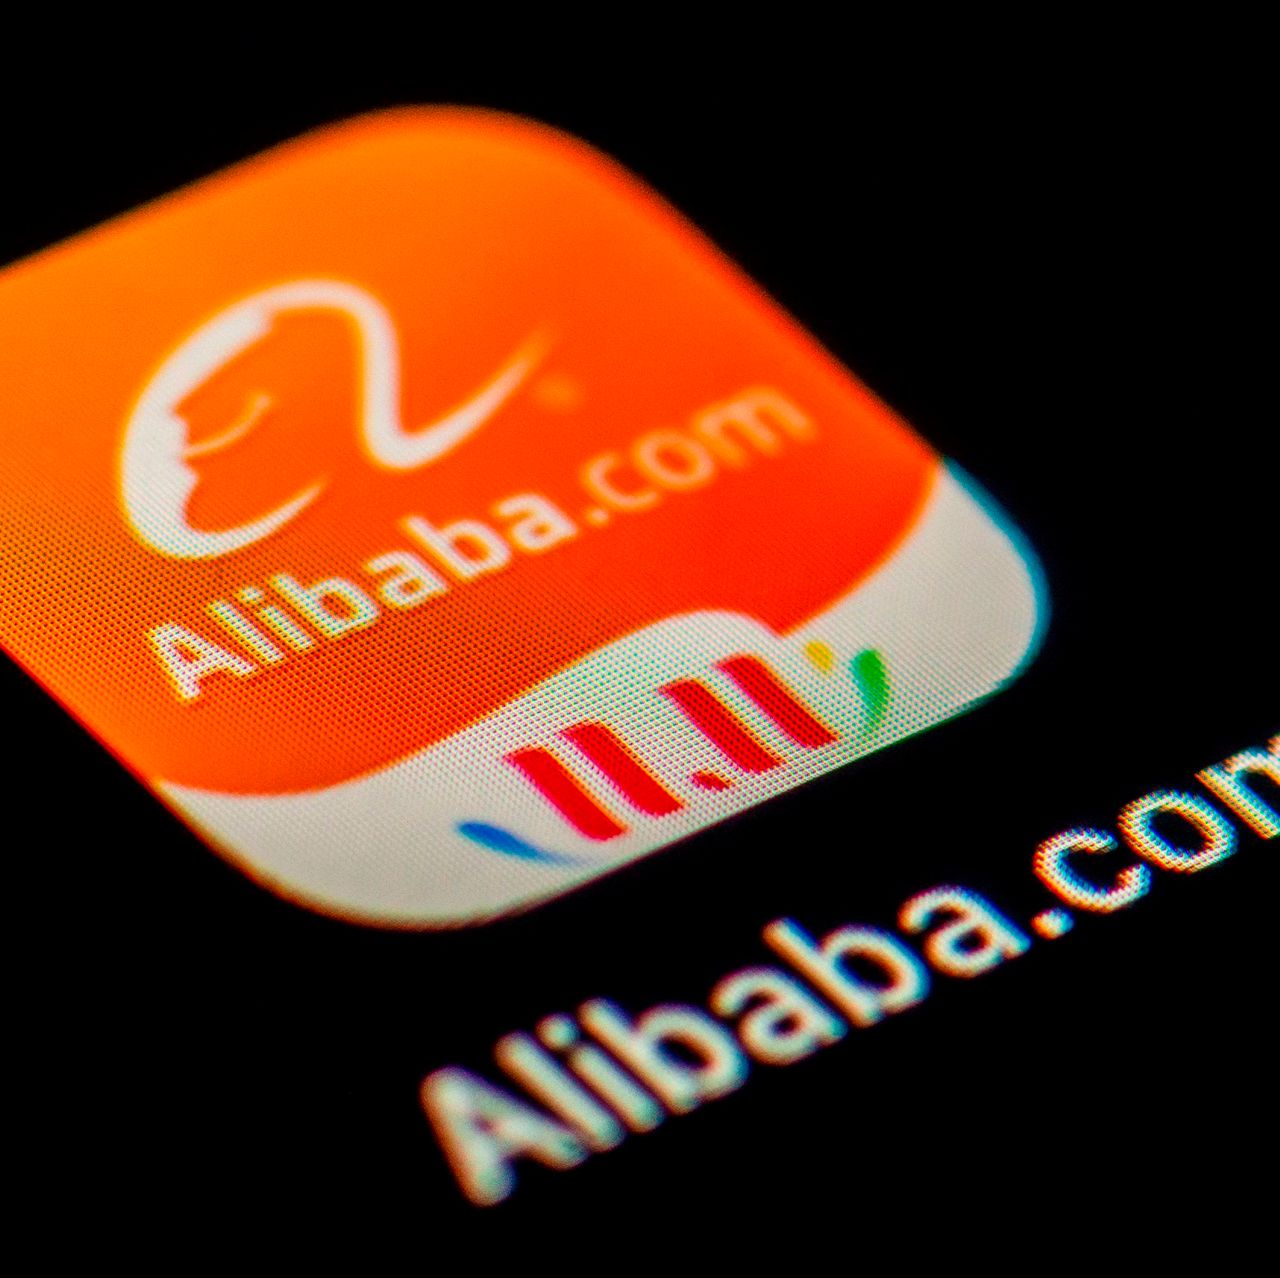 Alibaba Raises Stock Buyback Plan To 10 Billion But Shares Continue To Sink Marketwatch Import & export on alibaba.com. alibaba raises stock buyback plan to